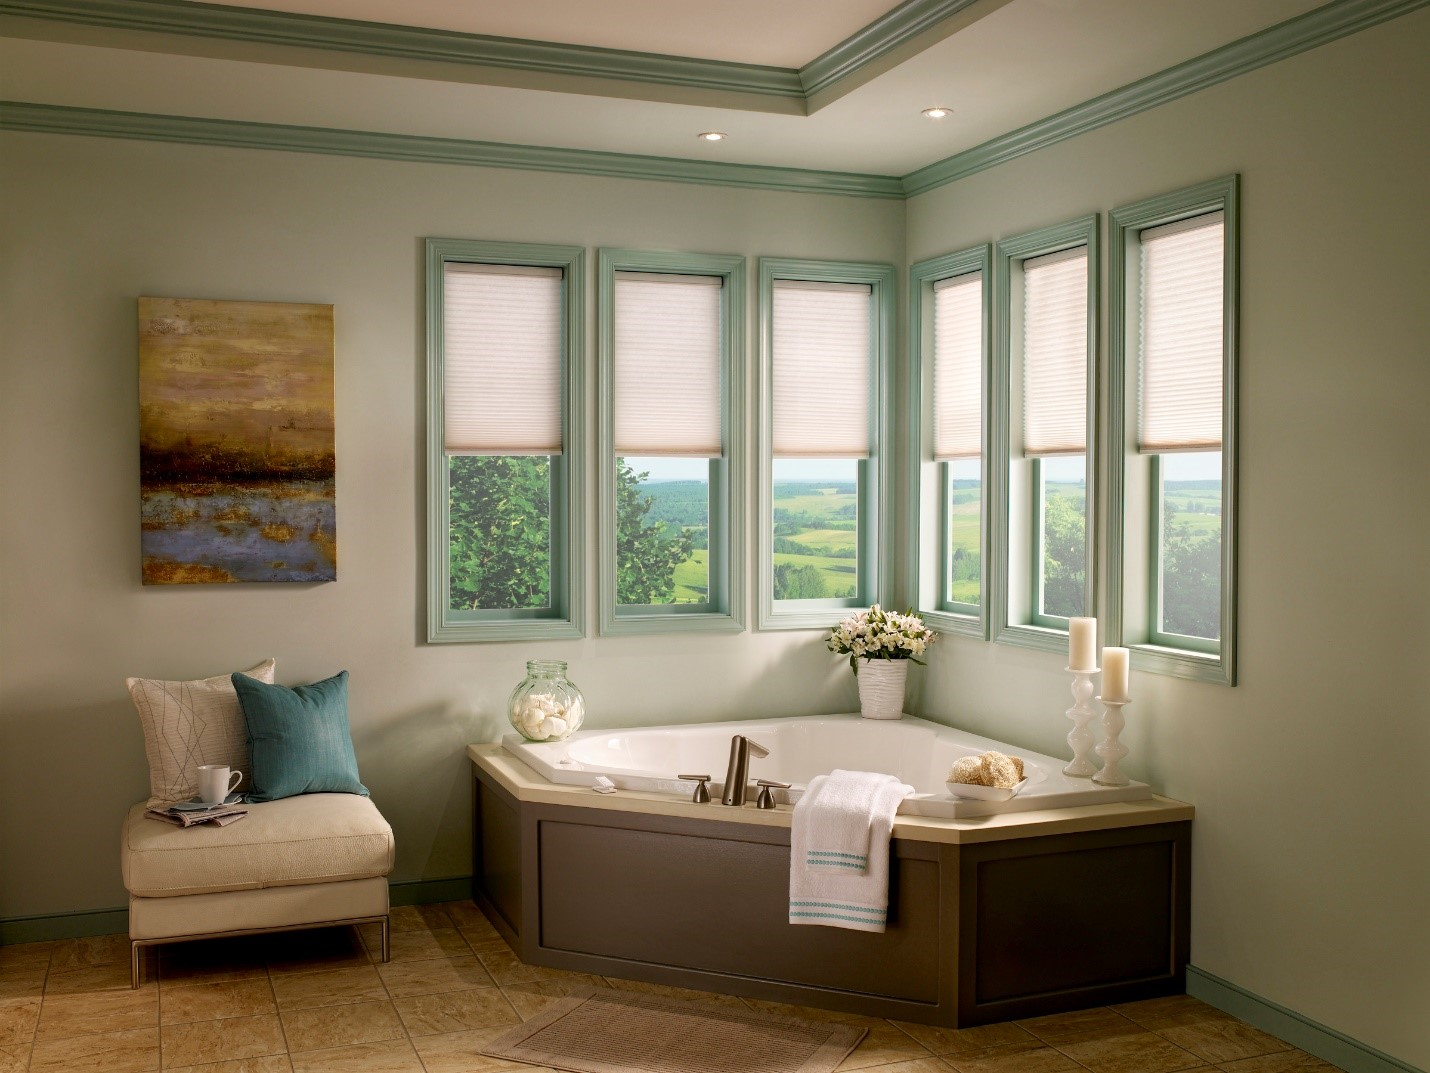 How Do Motorized Shades Help Your Home?